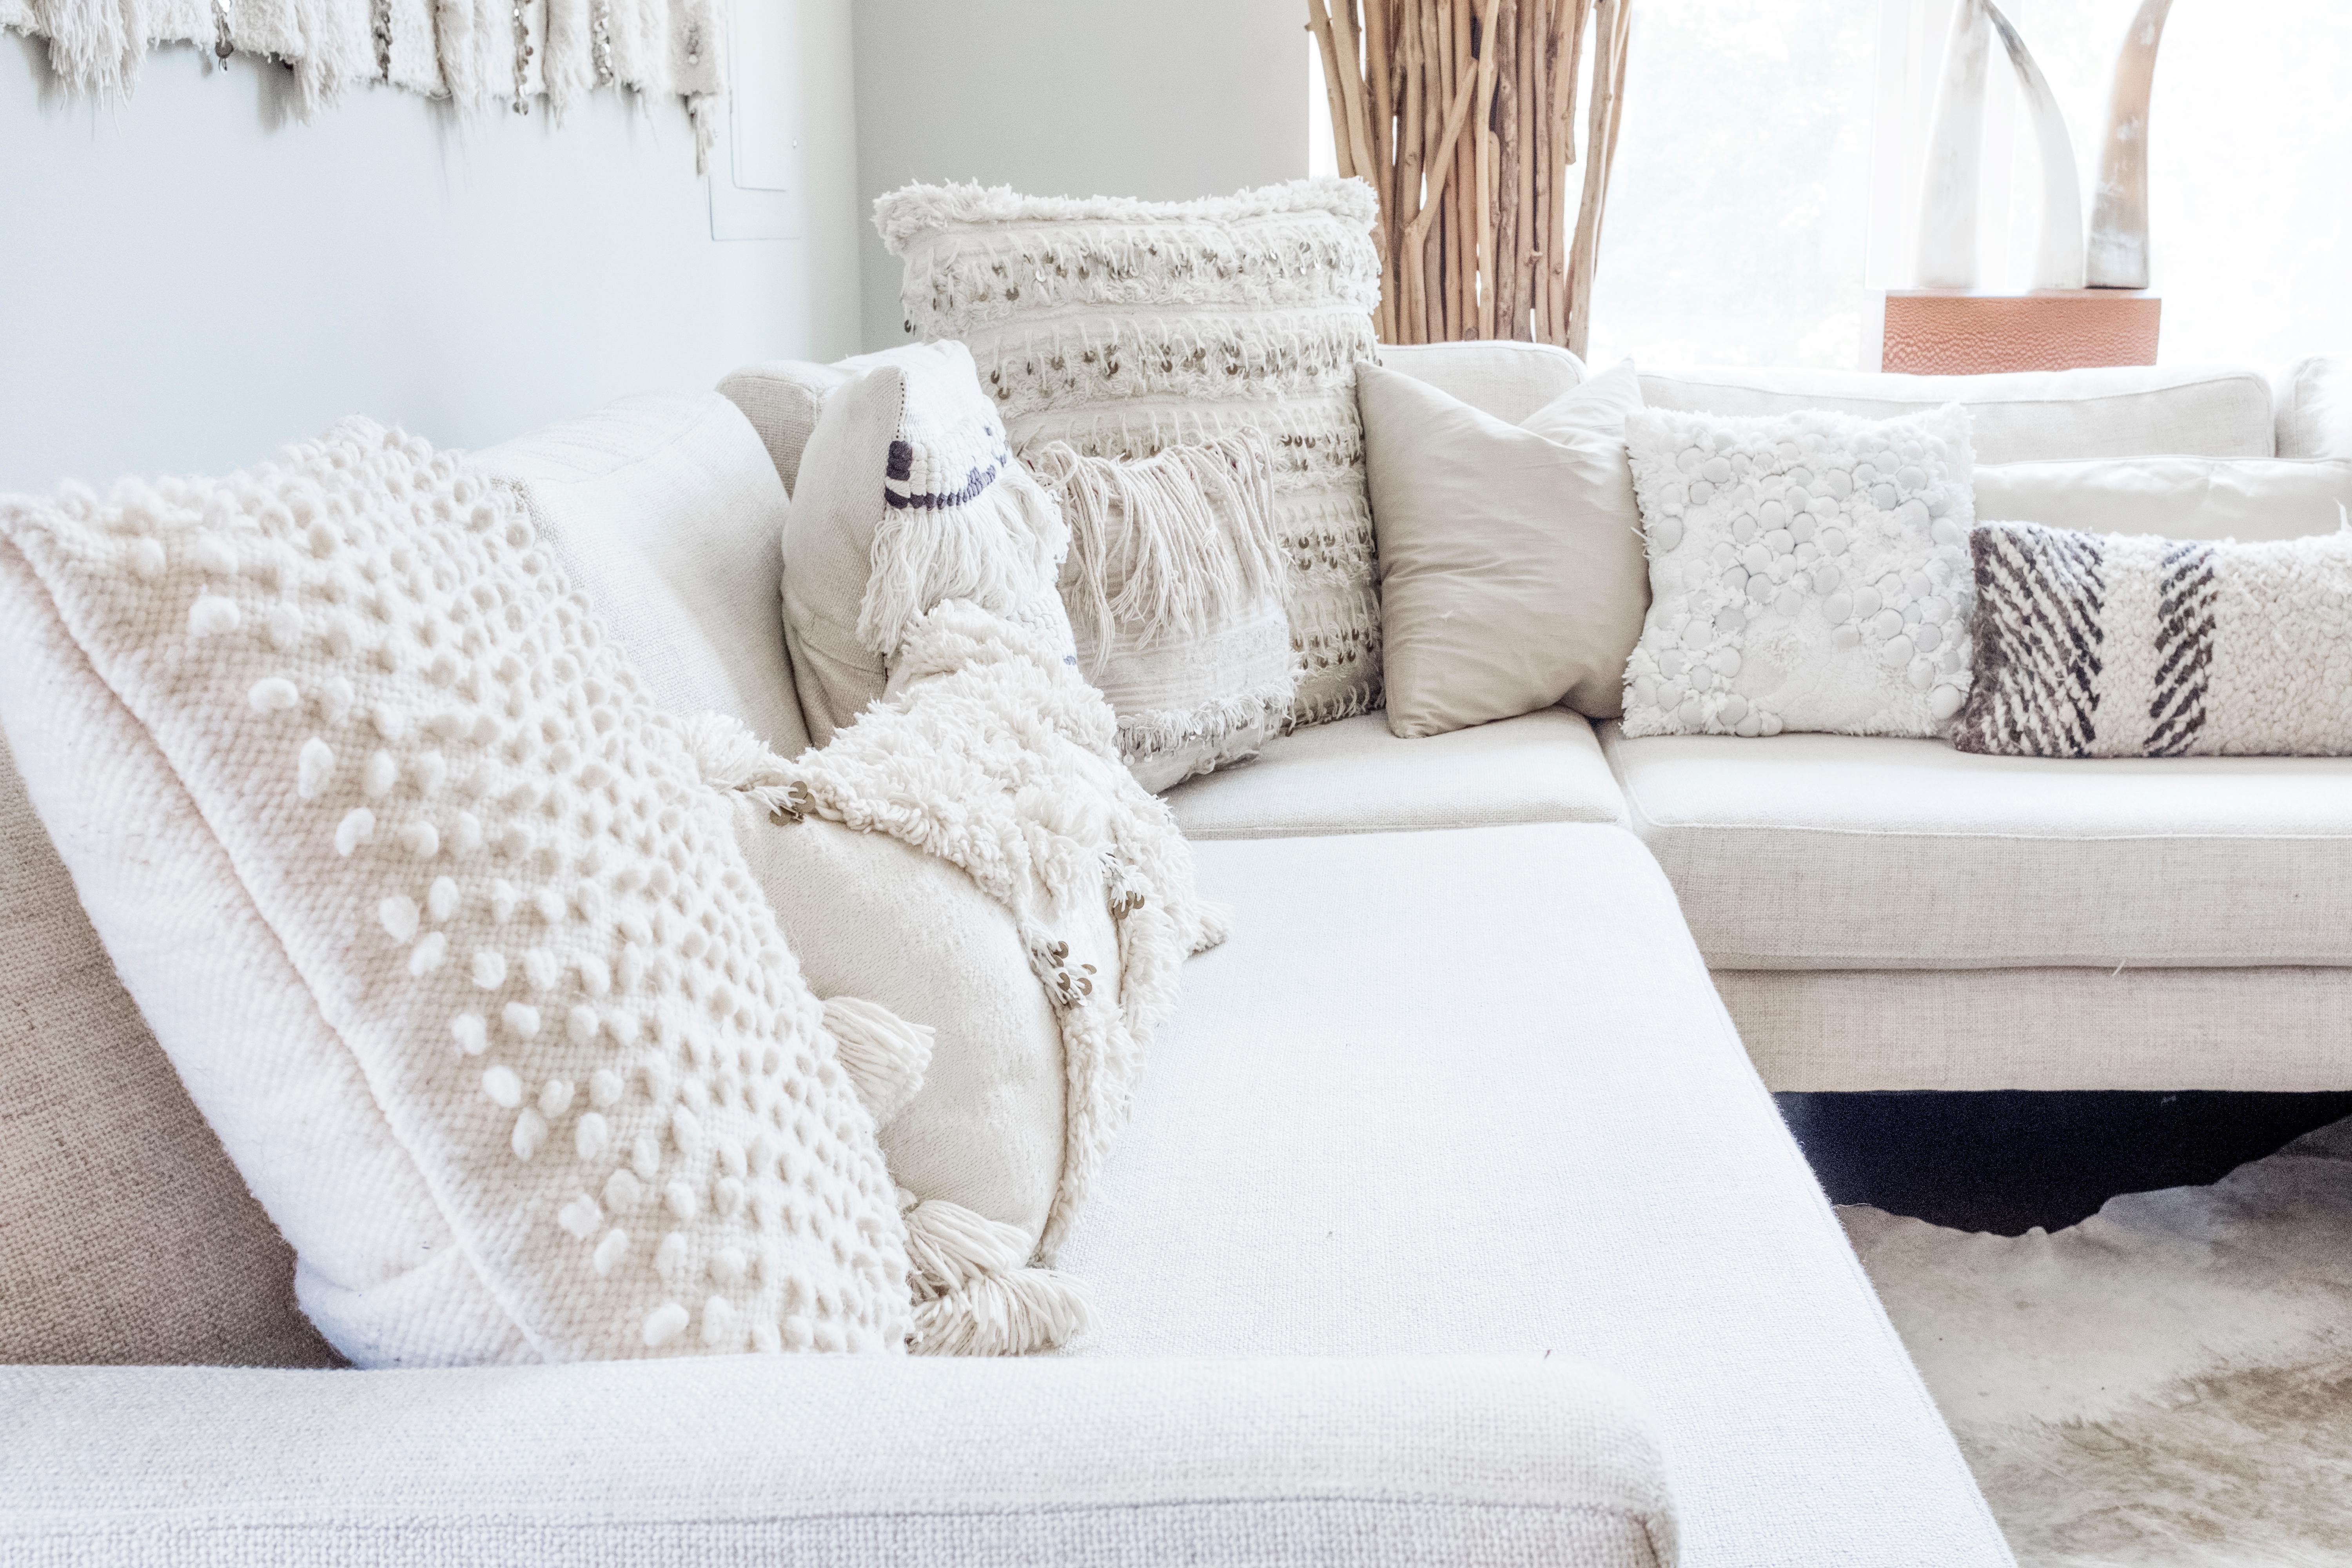 For a really bold look to really transform your room, pick a single color scheme (such as white) and then cover your whole couch with pillows in that hue, but of various sizes and textures. (Image: Ashley Hafstead)